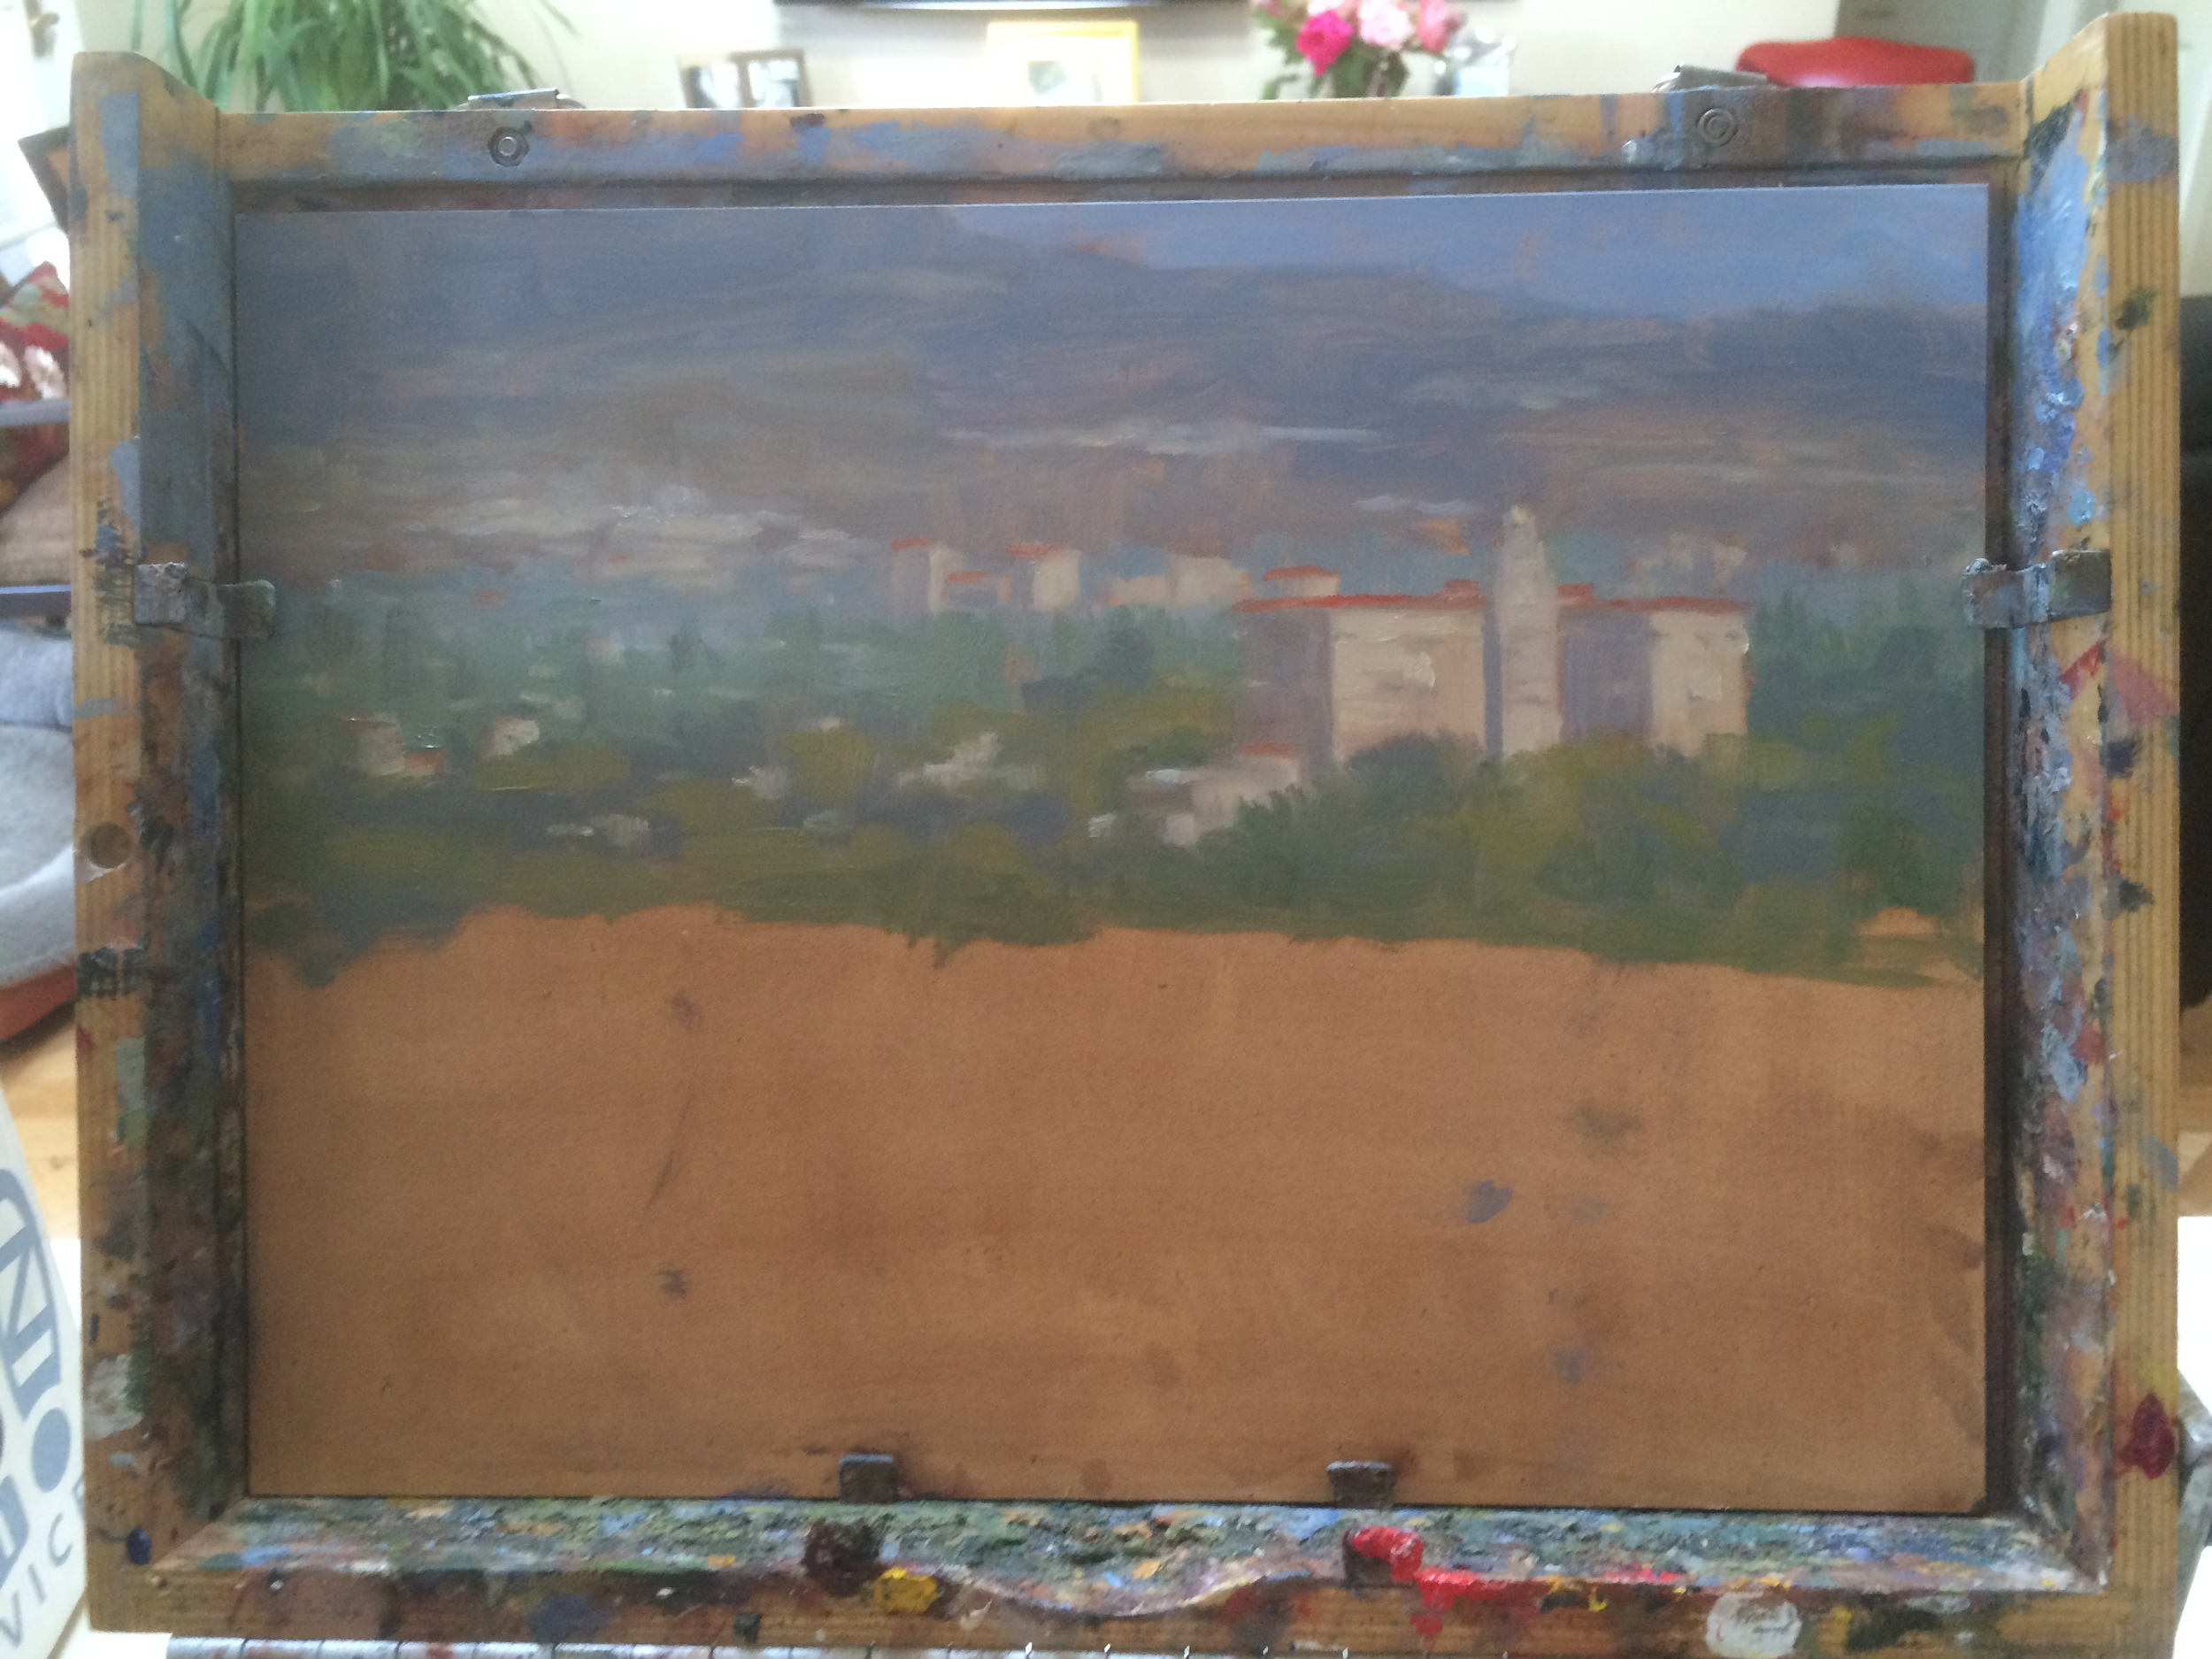 Pasadena Court of Appeals and San Gabriels, check. Next up, foreground, Colorado Street Bridge and 210 fwy.